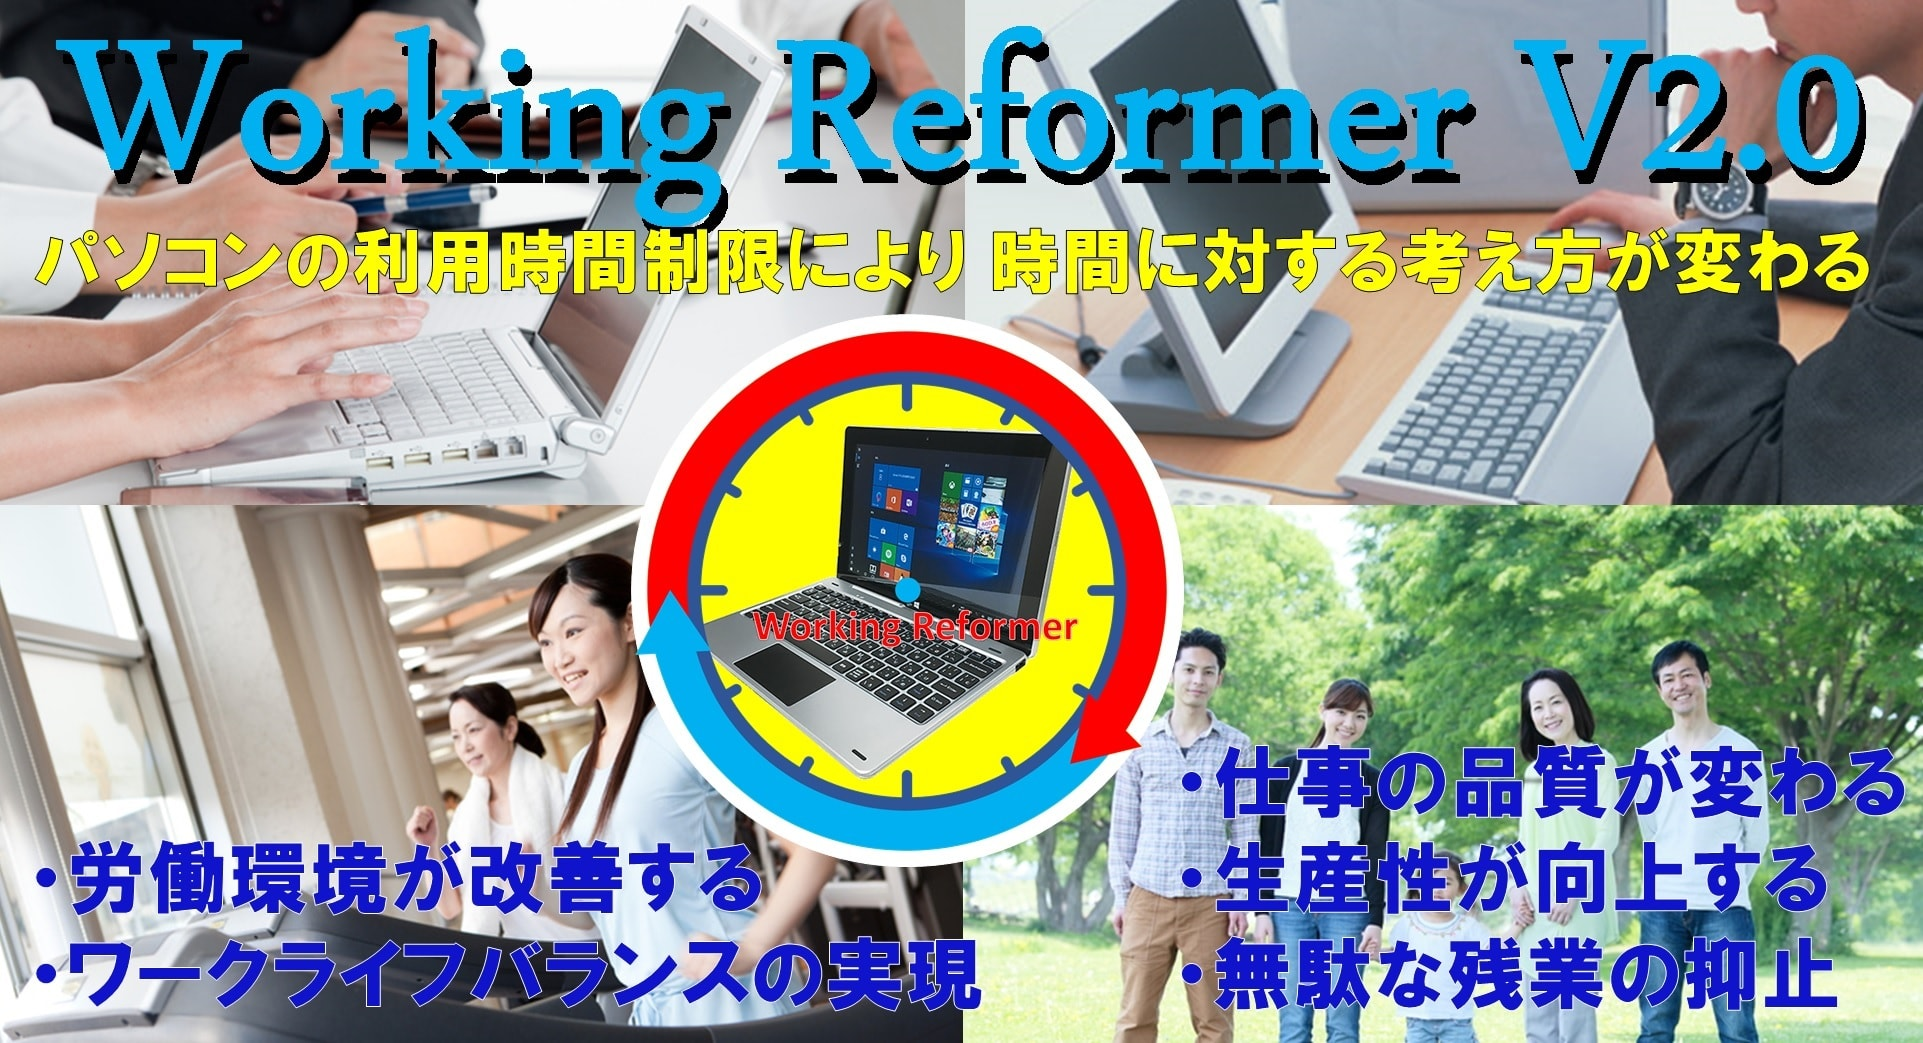 Working Refomer TOP